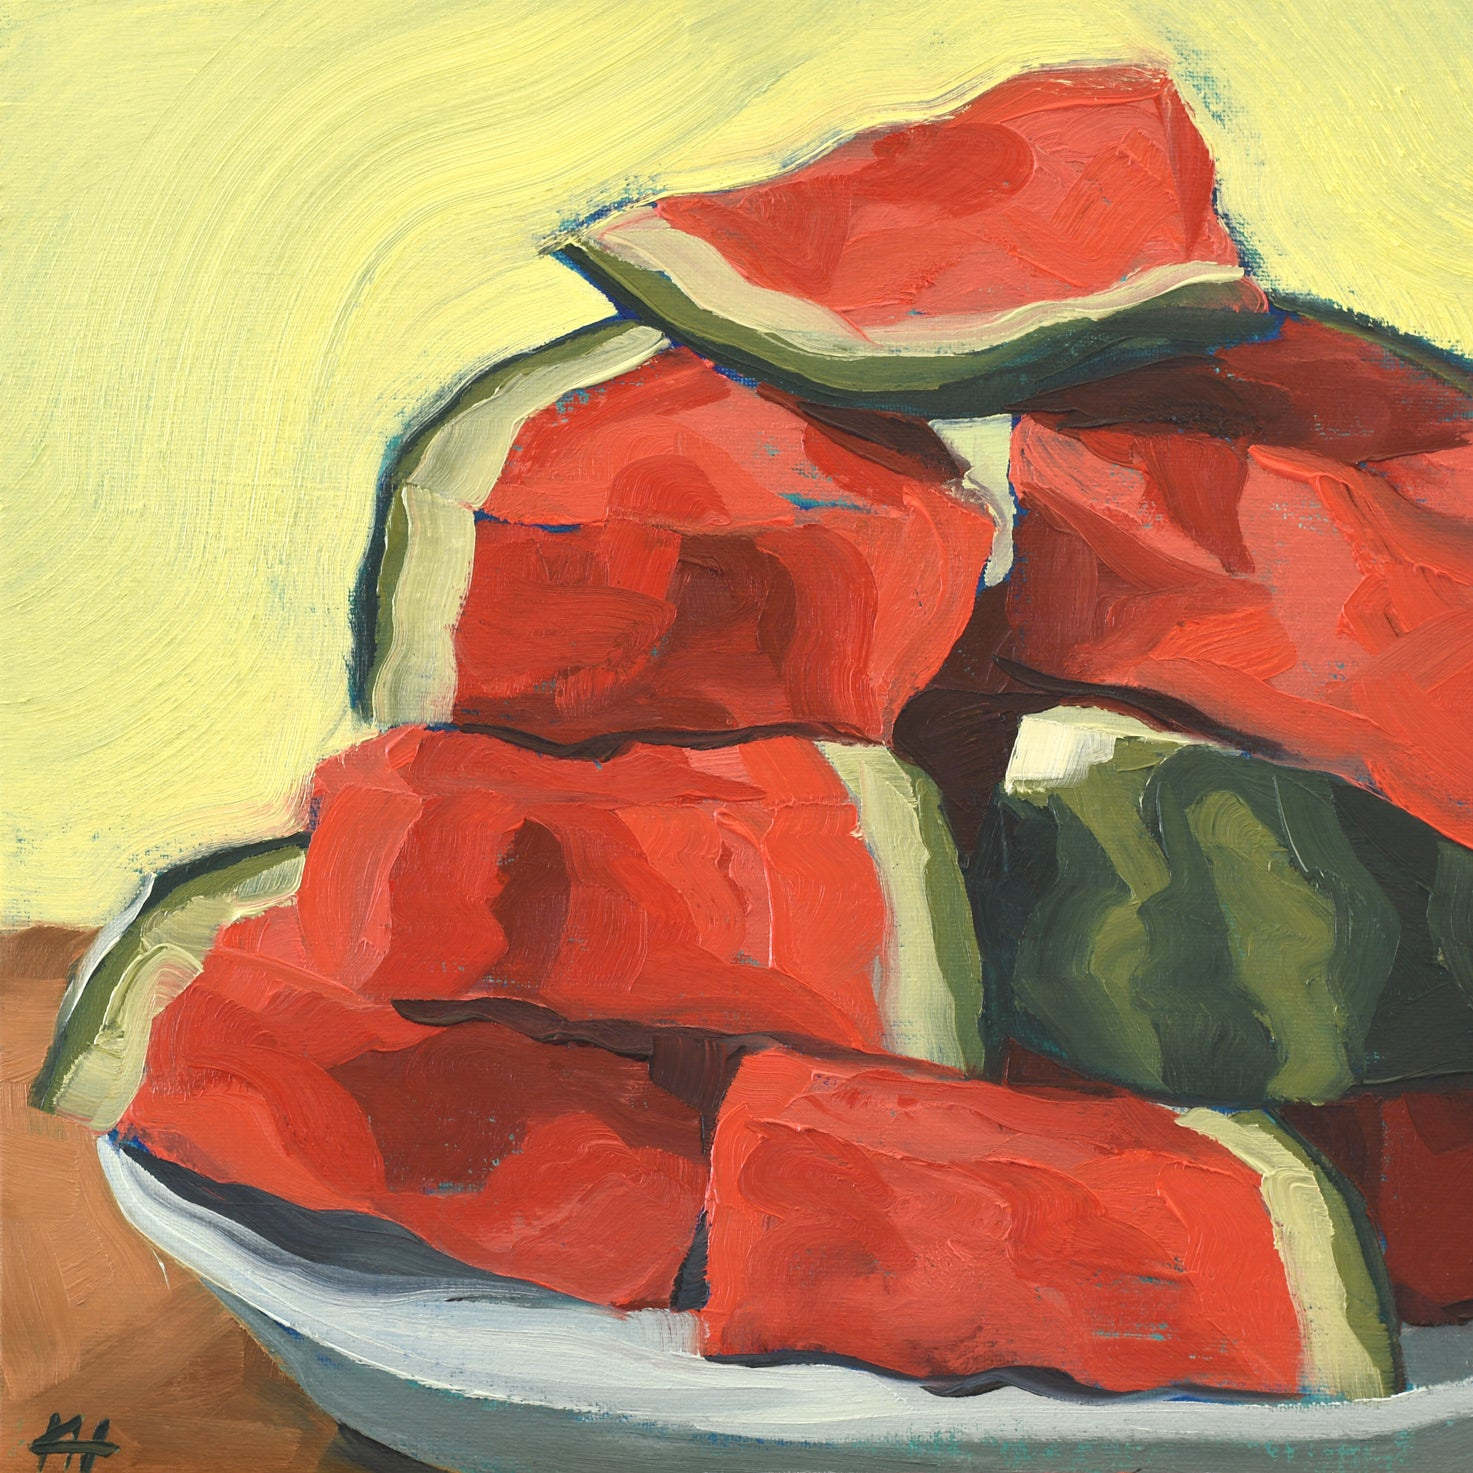 """Watermelon Pyramid"", Wall Hangings for Living Room, Oil Painting Wall Art"